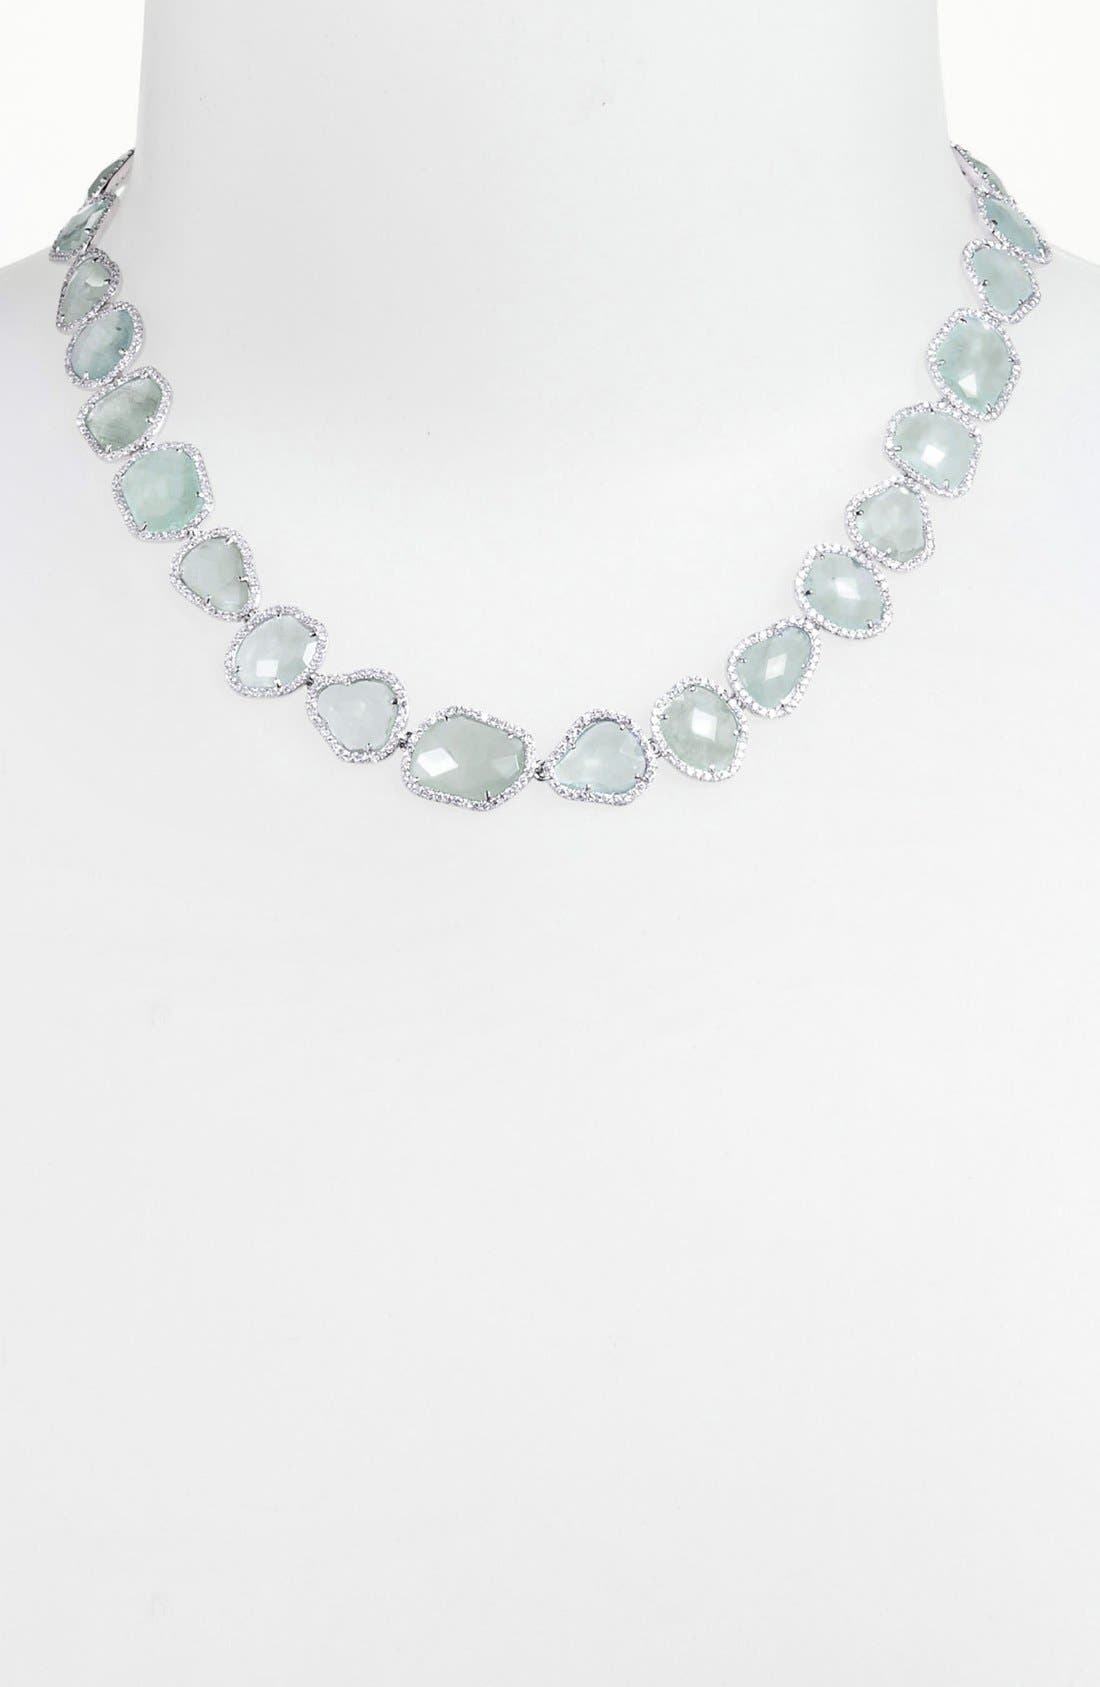 Alternate Image 1 Selected - Nadri Collar Necklace (Nordstrom Exclusive)